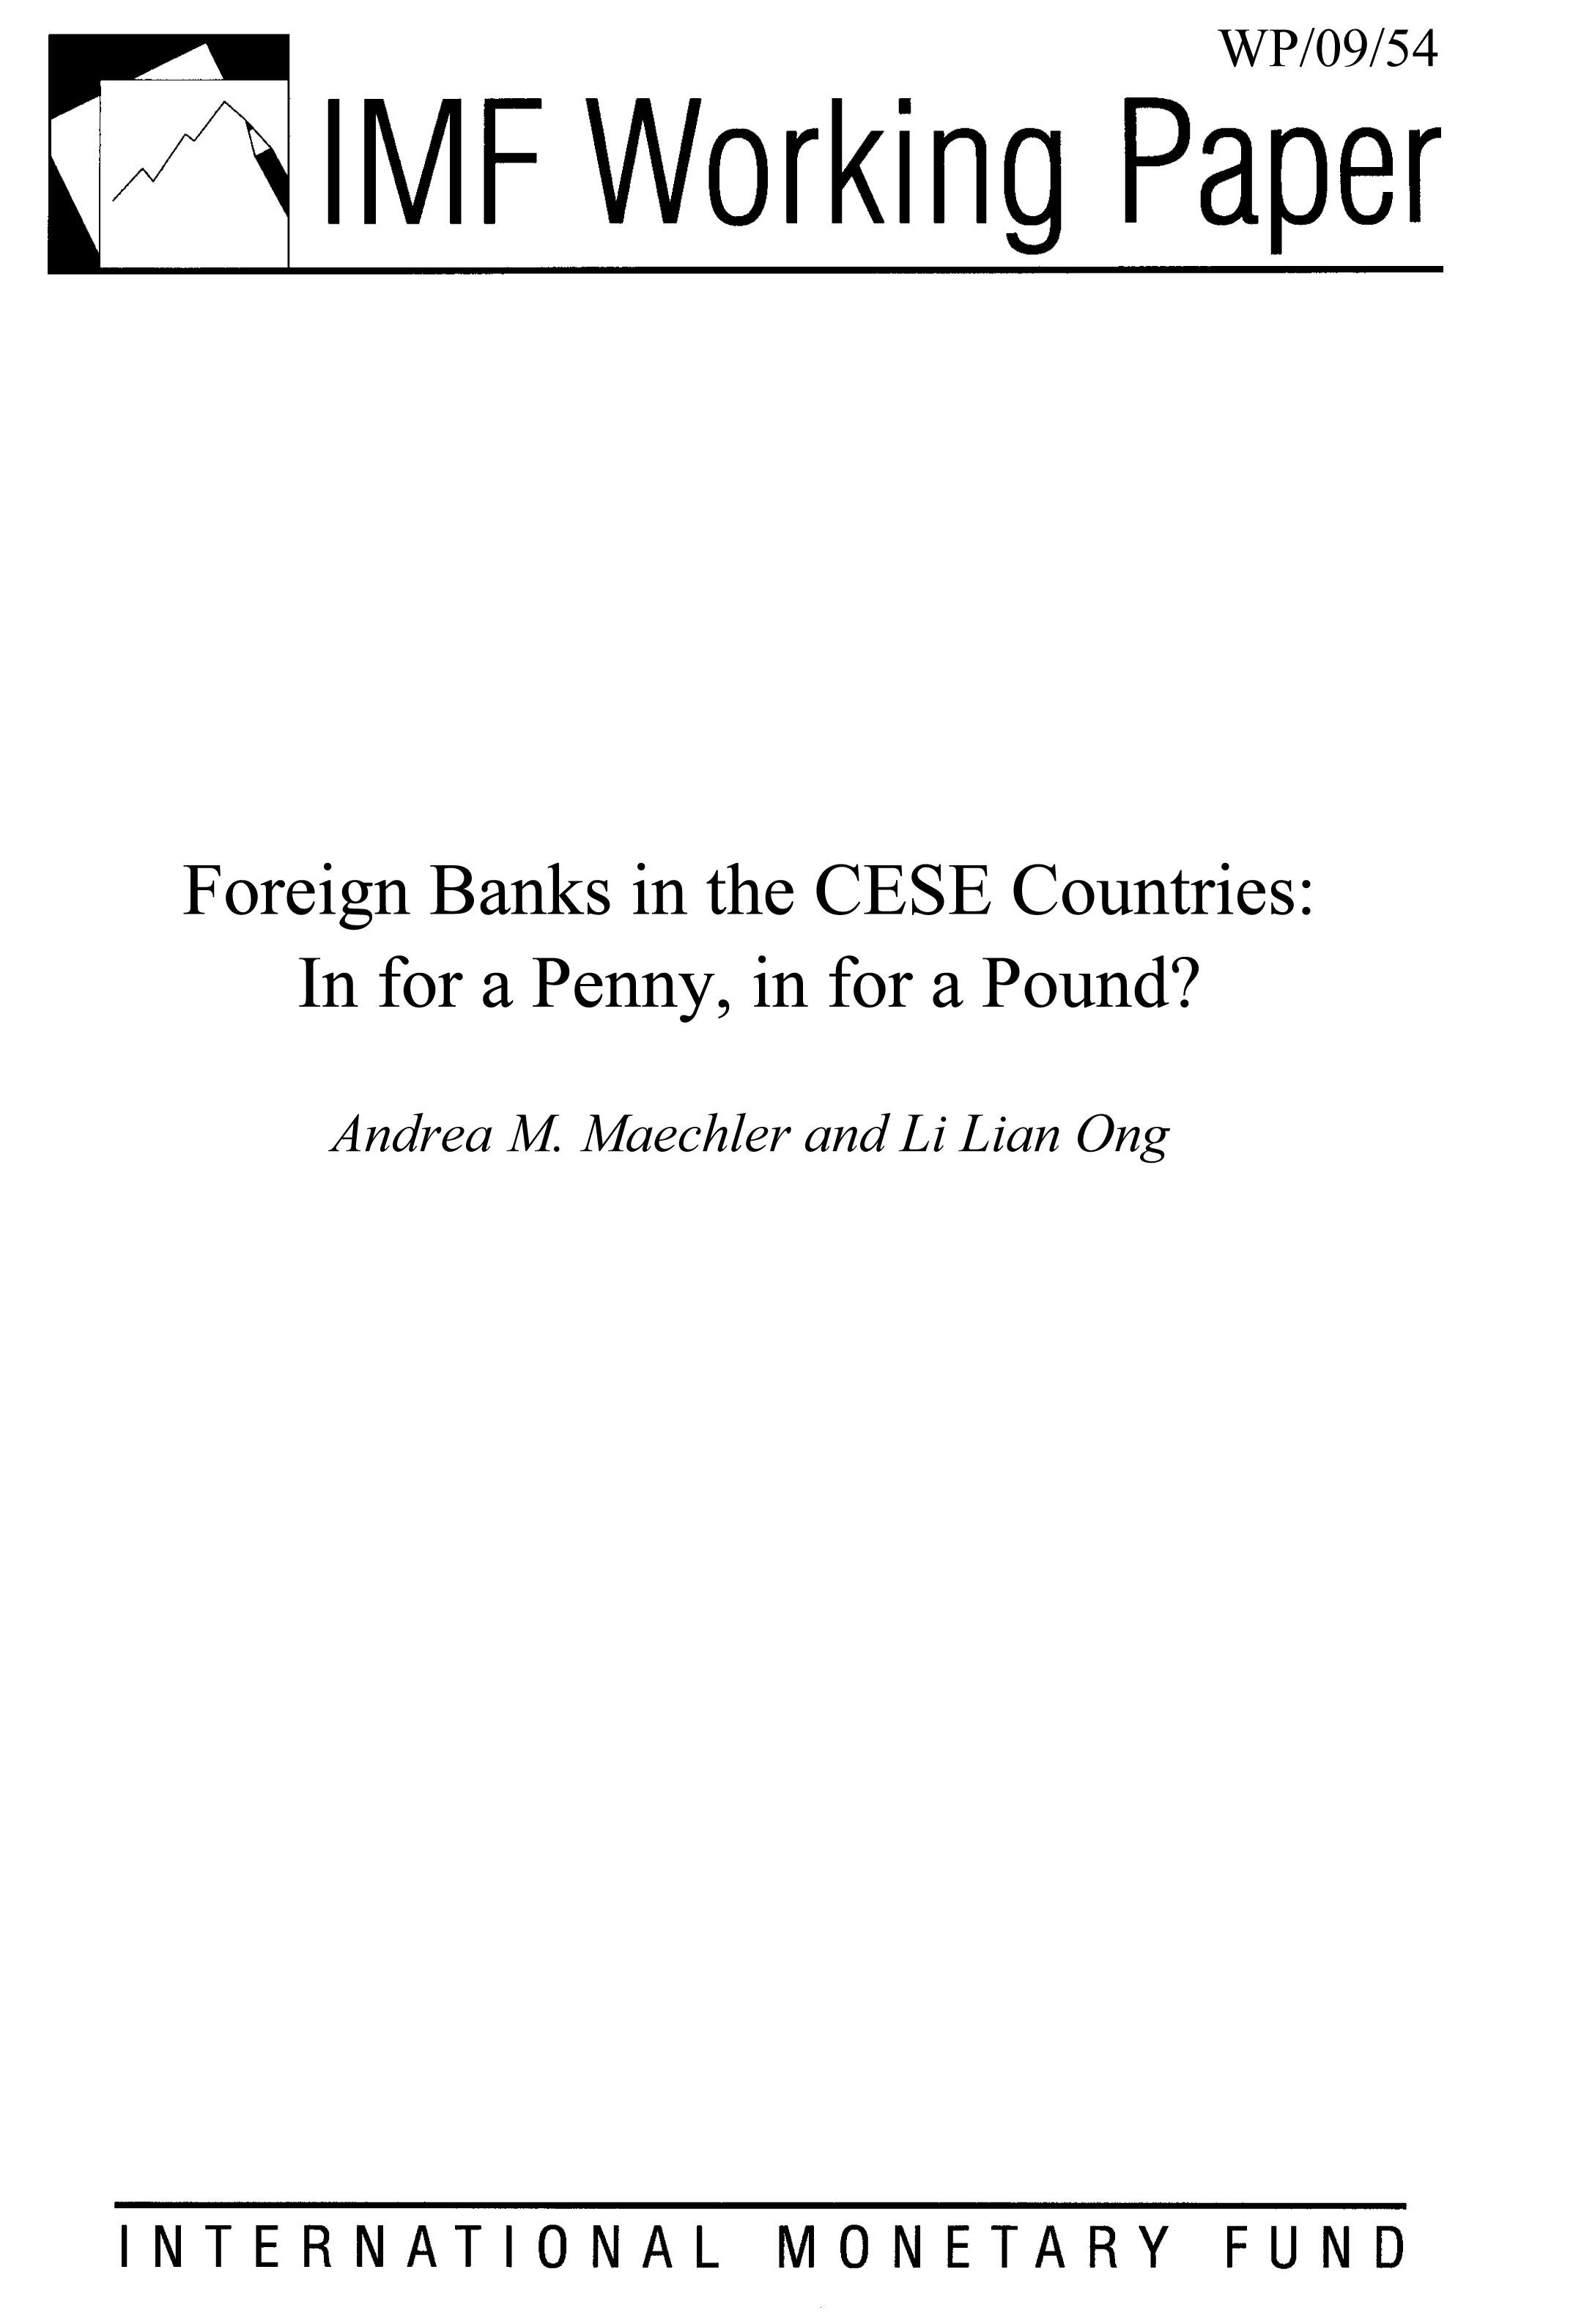 Andrea M.  Maechler - Foreign Banks in the CESE Countries: In for a Penny, in for a Pound?